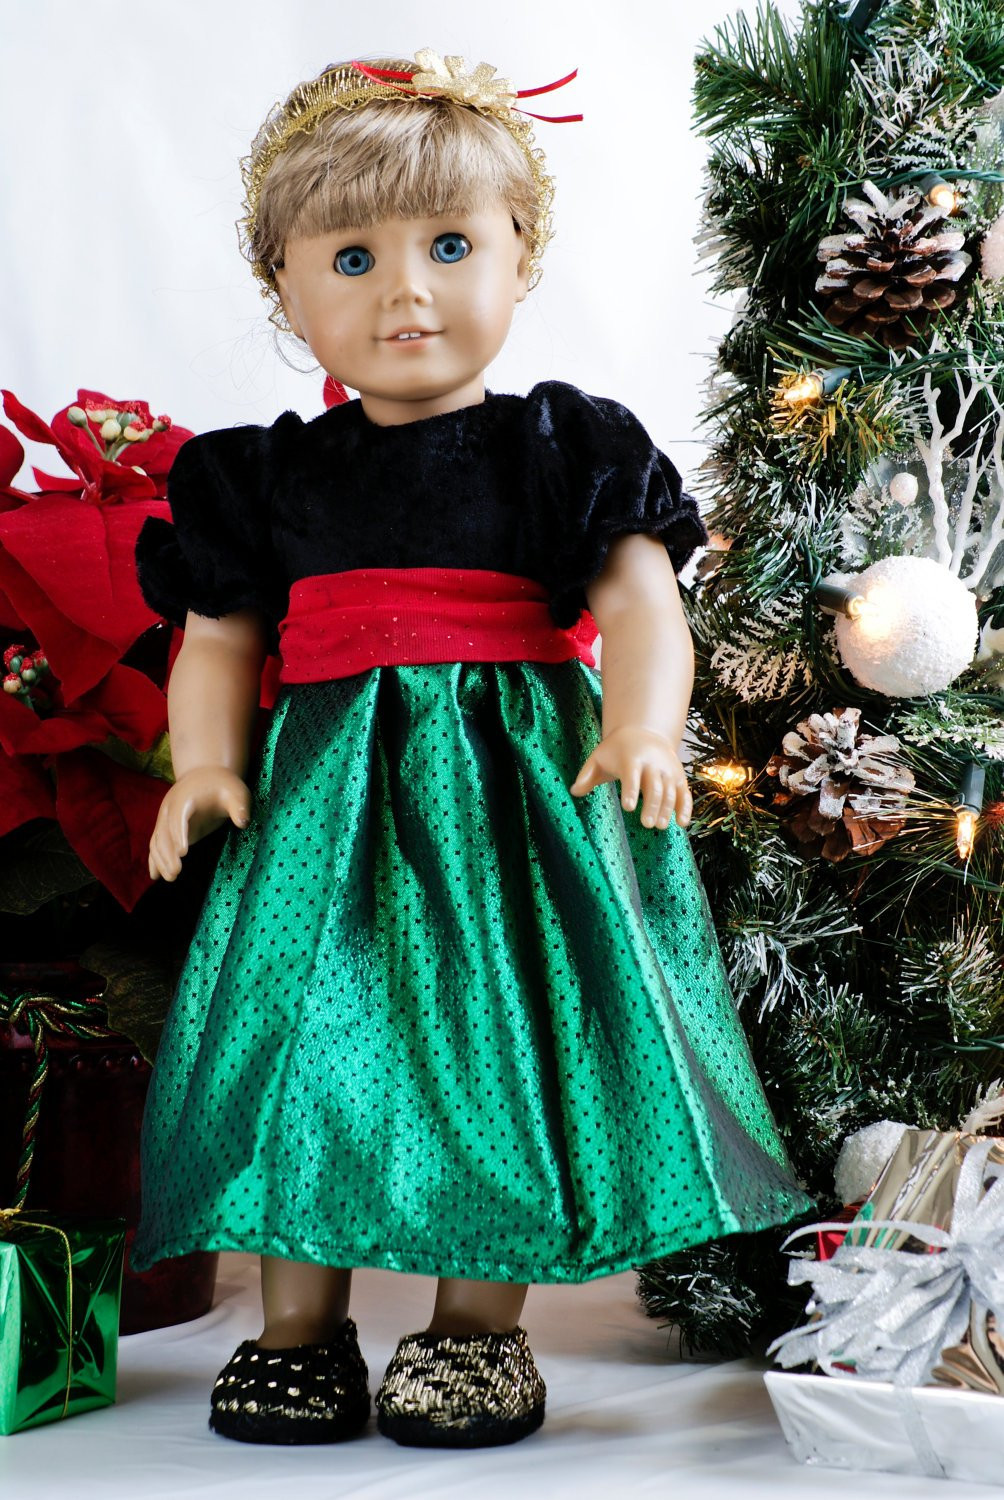 Awesome American Girl Doll Clothes Christmas Black Green and Red American Girl Doll Christmas Outfits Of Wonderful 40 Ideas American Girl Doll Christmas Outfits